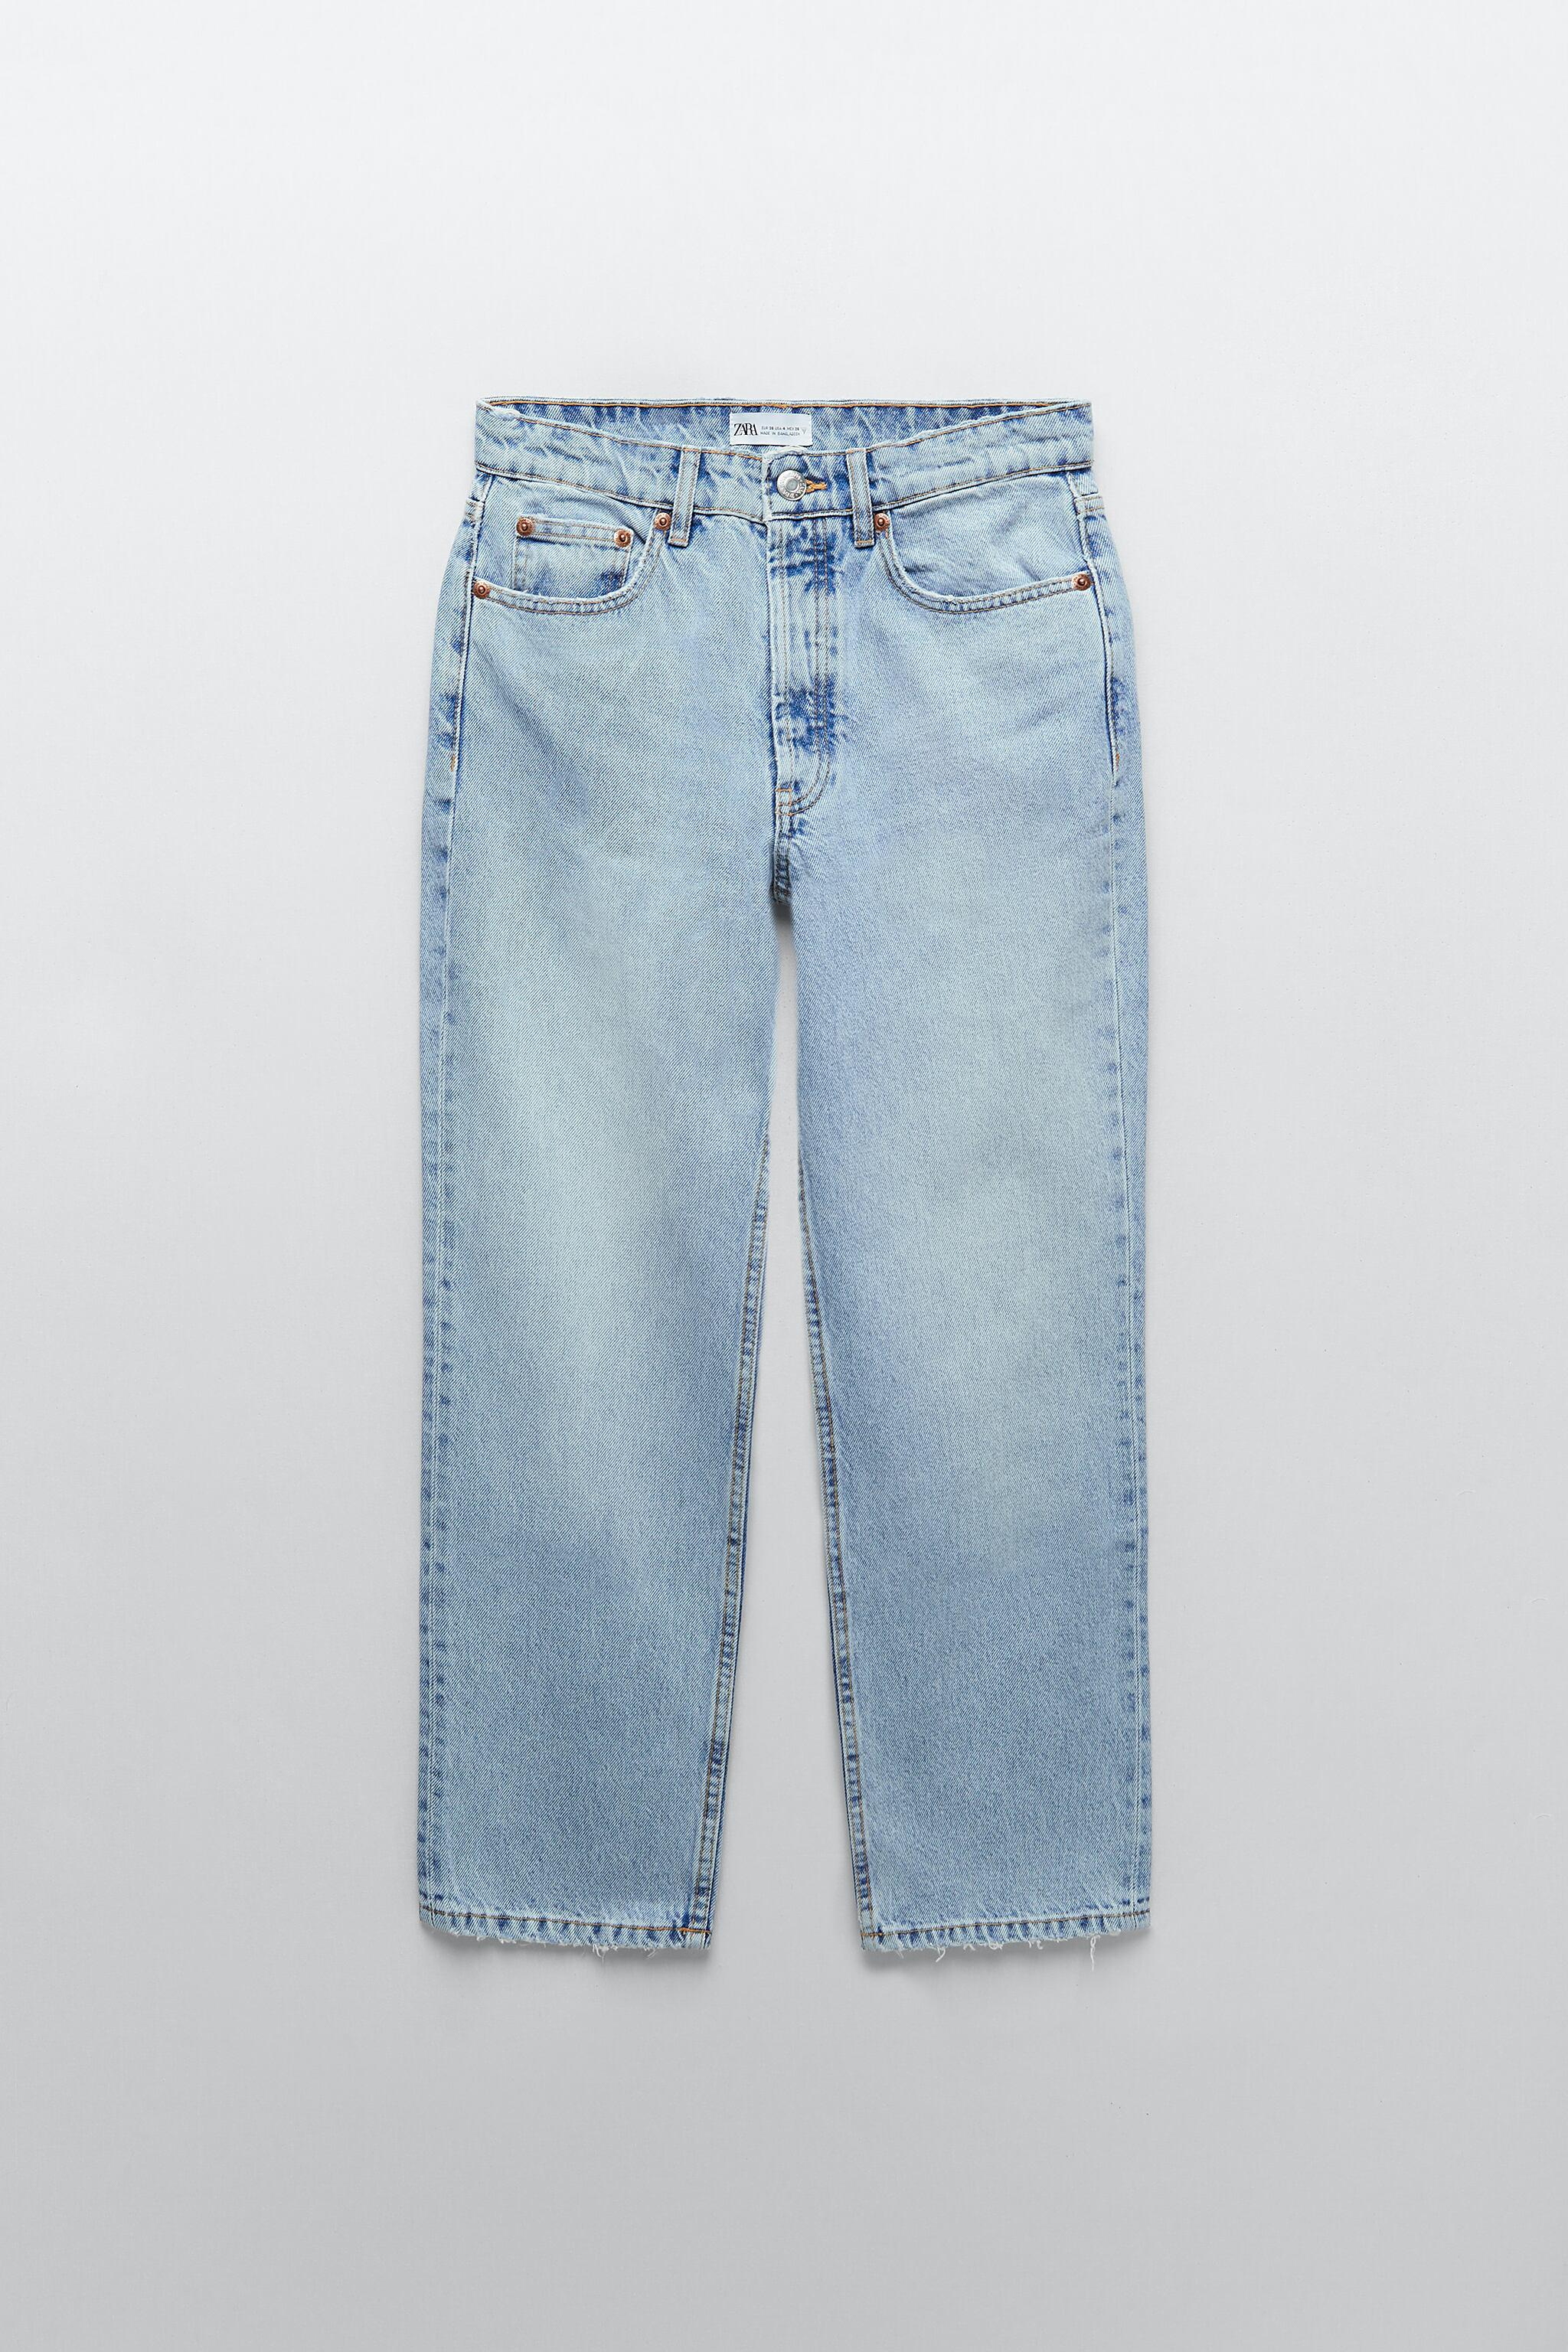 MID-RISE STRAIGHT LEG ANKLE LENGTH JEANS 5